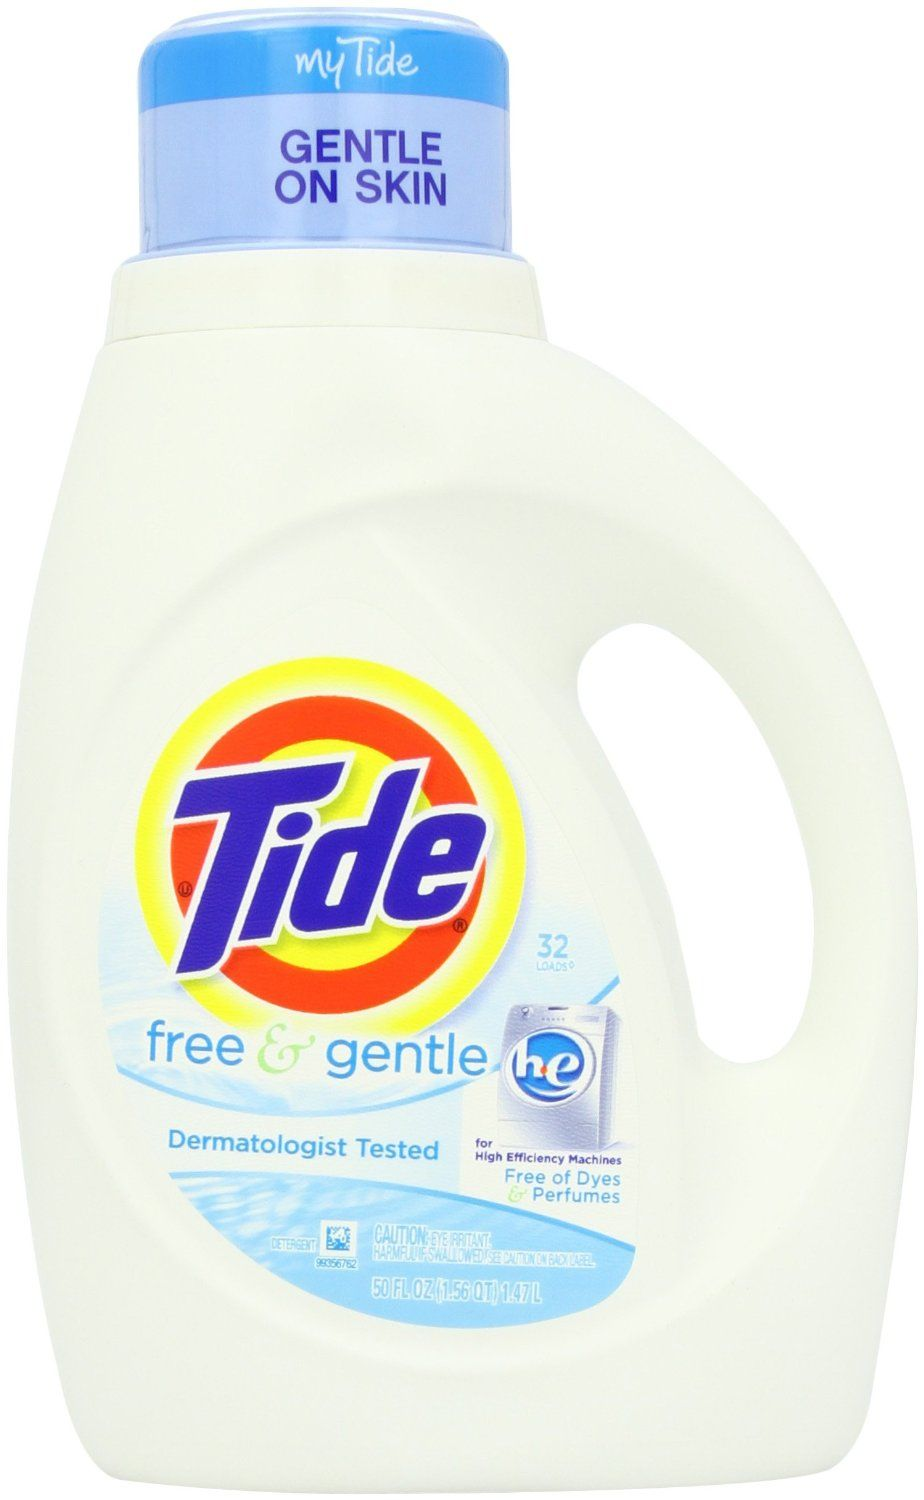 Amazon Tide He Free Gentle Deal Only 4 93 Per 50oz Bottle Free Shipping Gentle Laundry Detergent Tide Free And Gentle Laundry Detergent